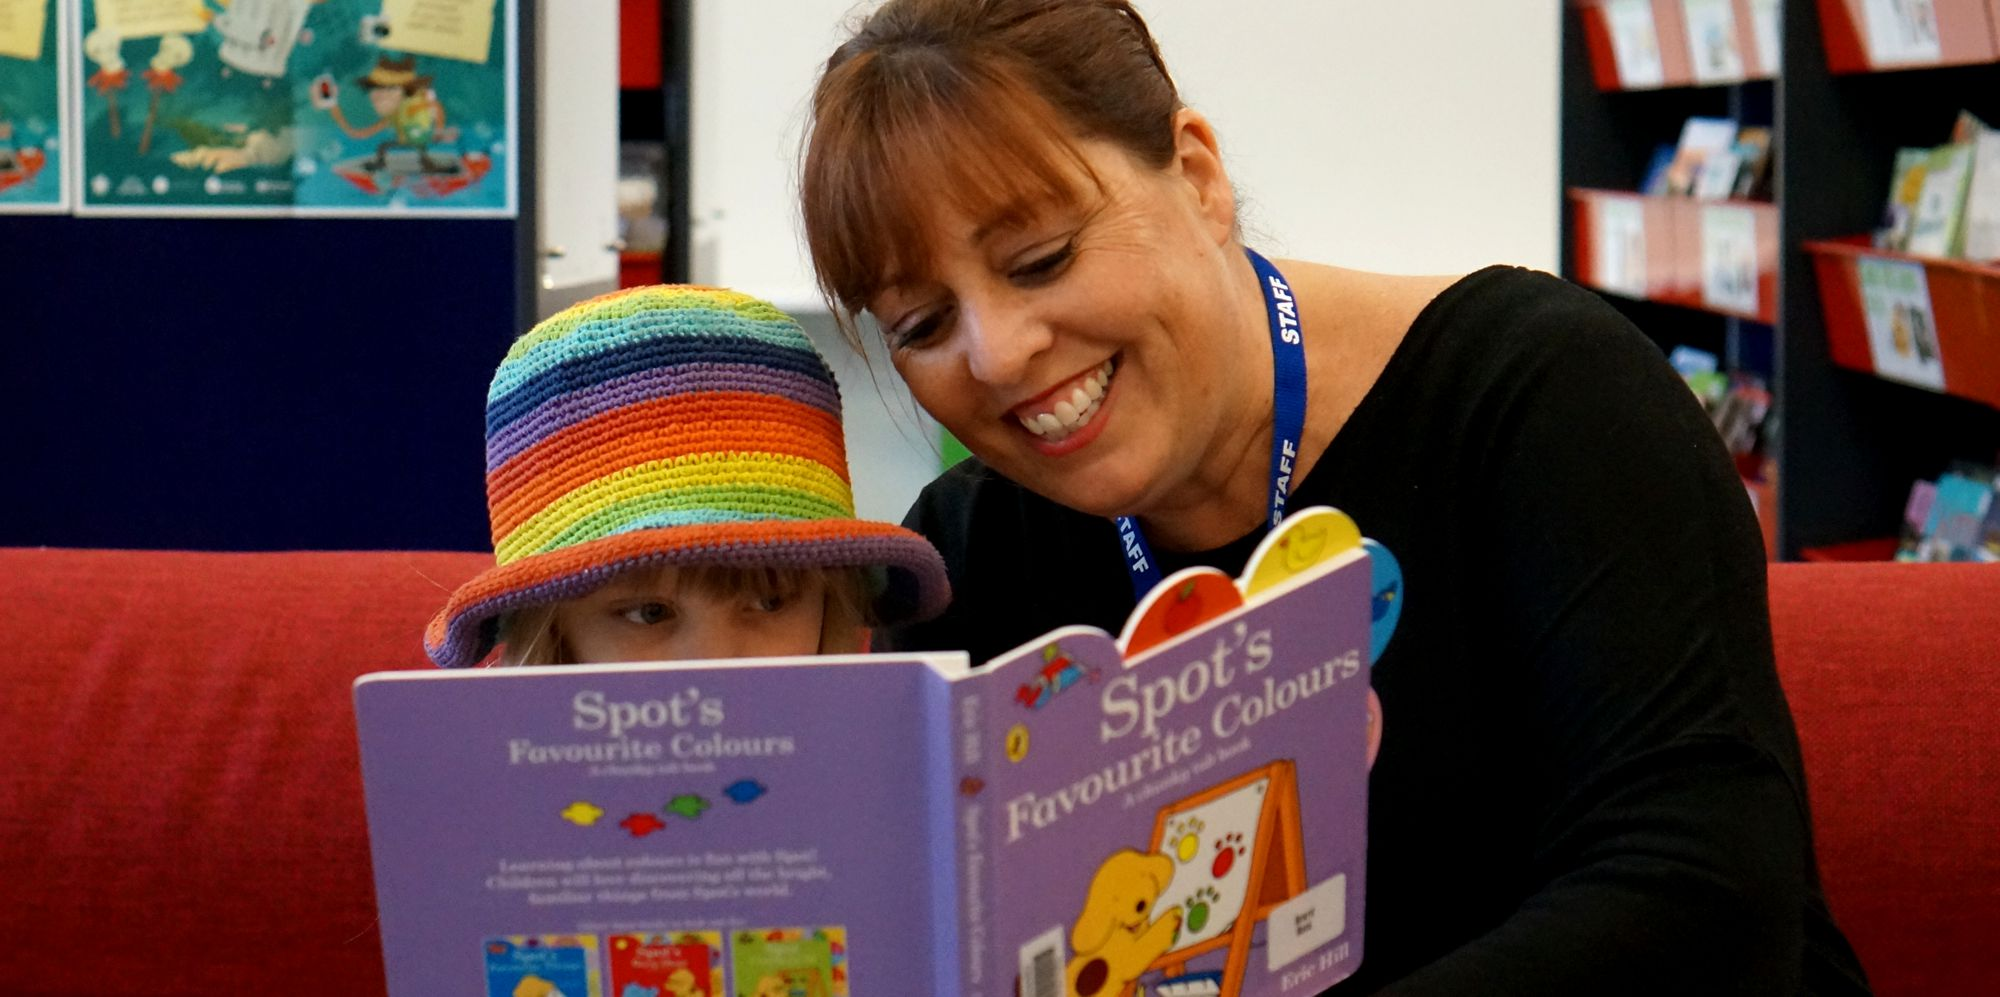 Reading to your child promotes early literacy